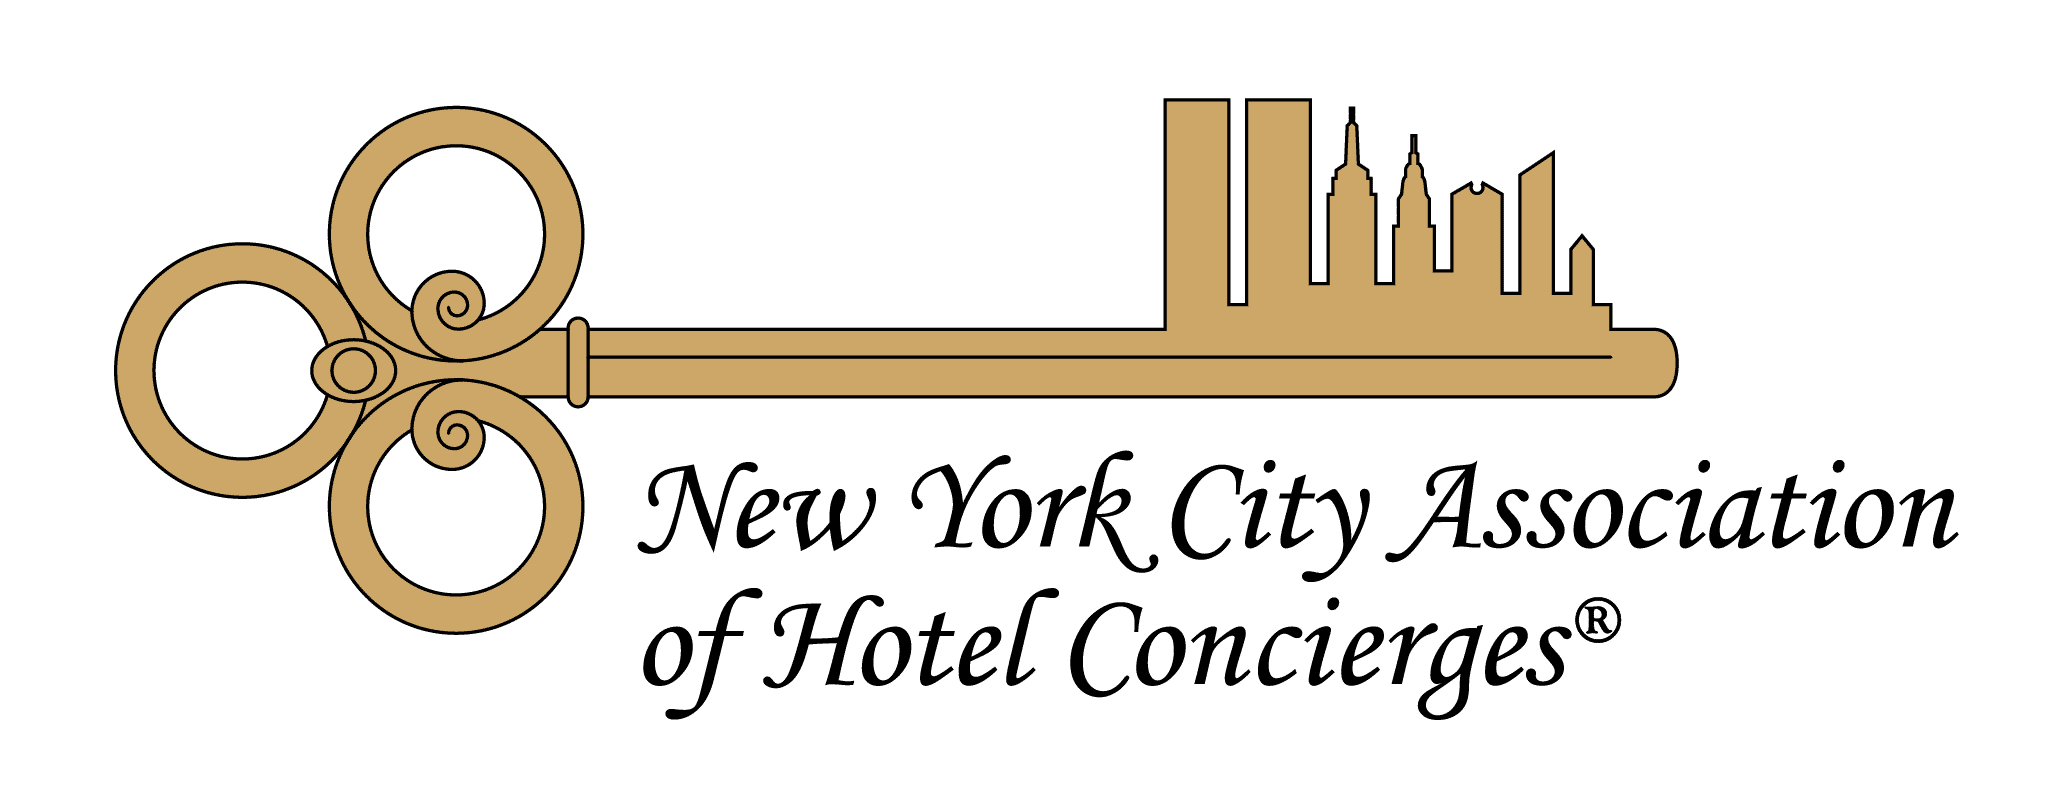 New York City Association of Hotel Concierges logo